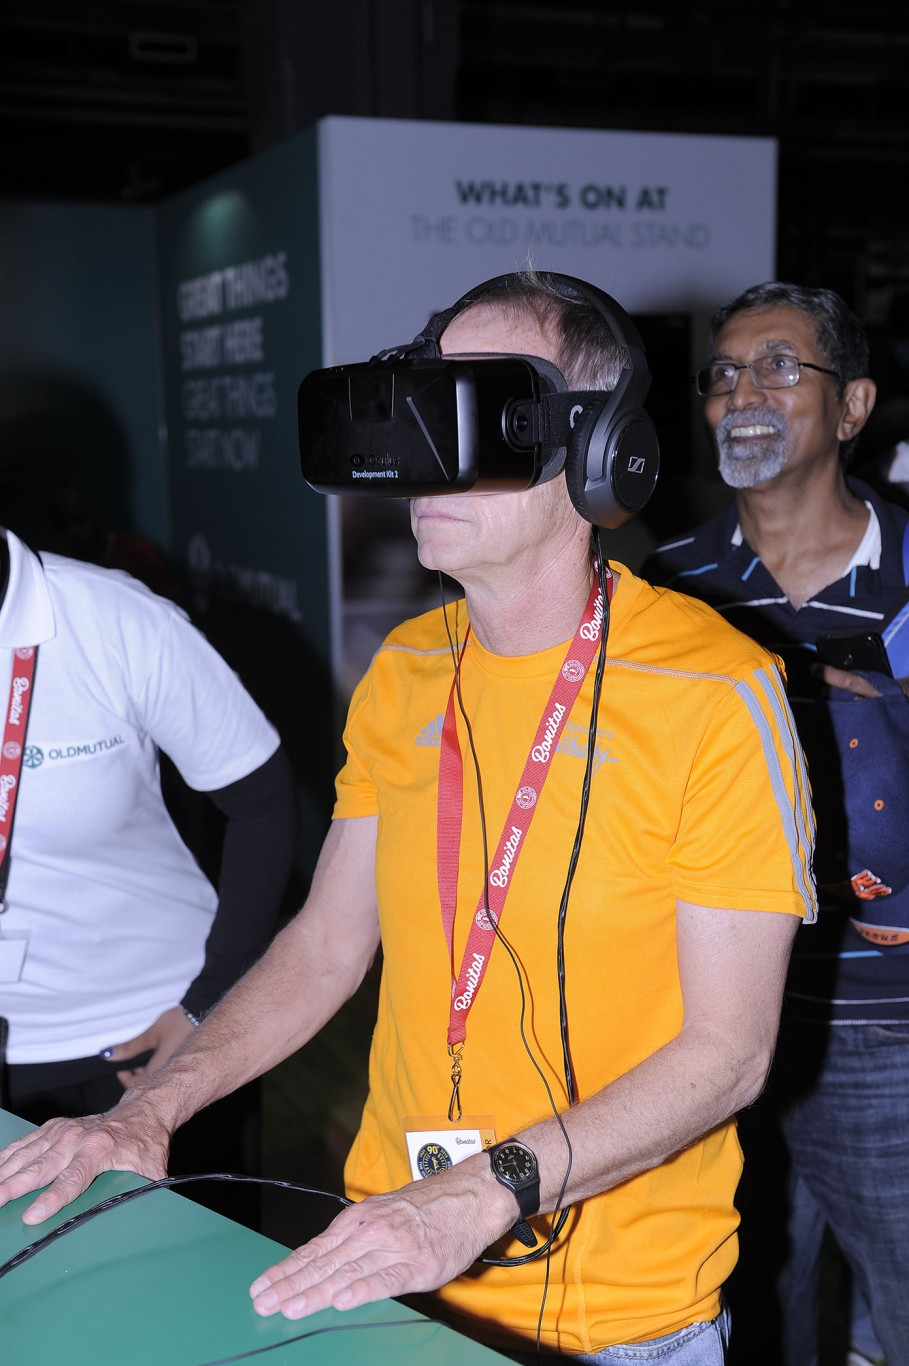 Occulus Rift at the Comrades Expo